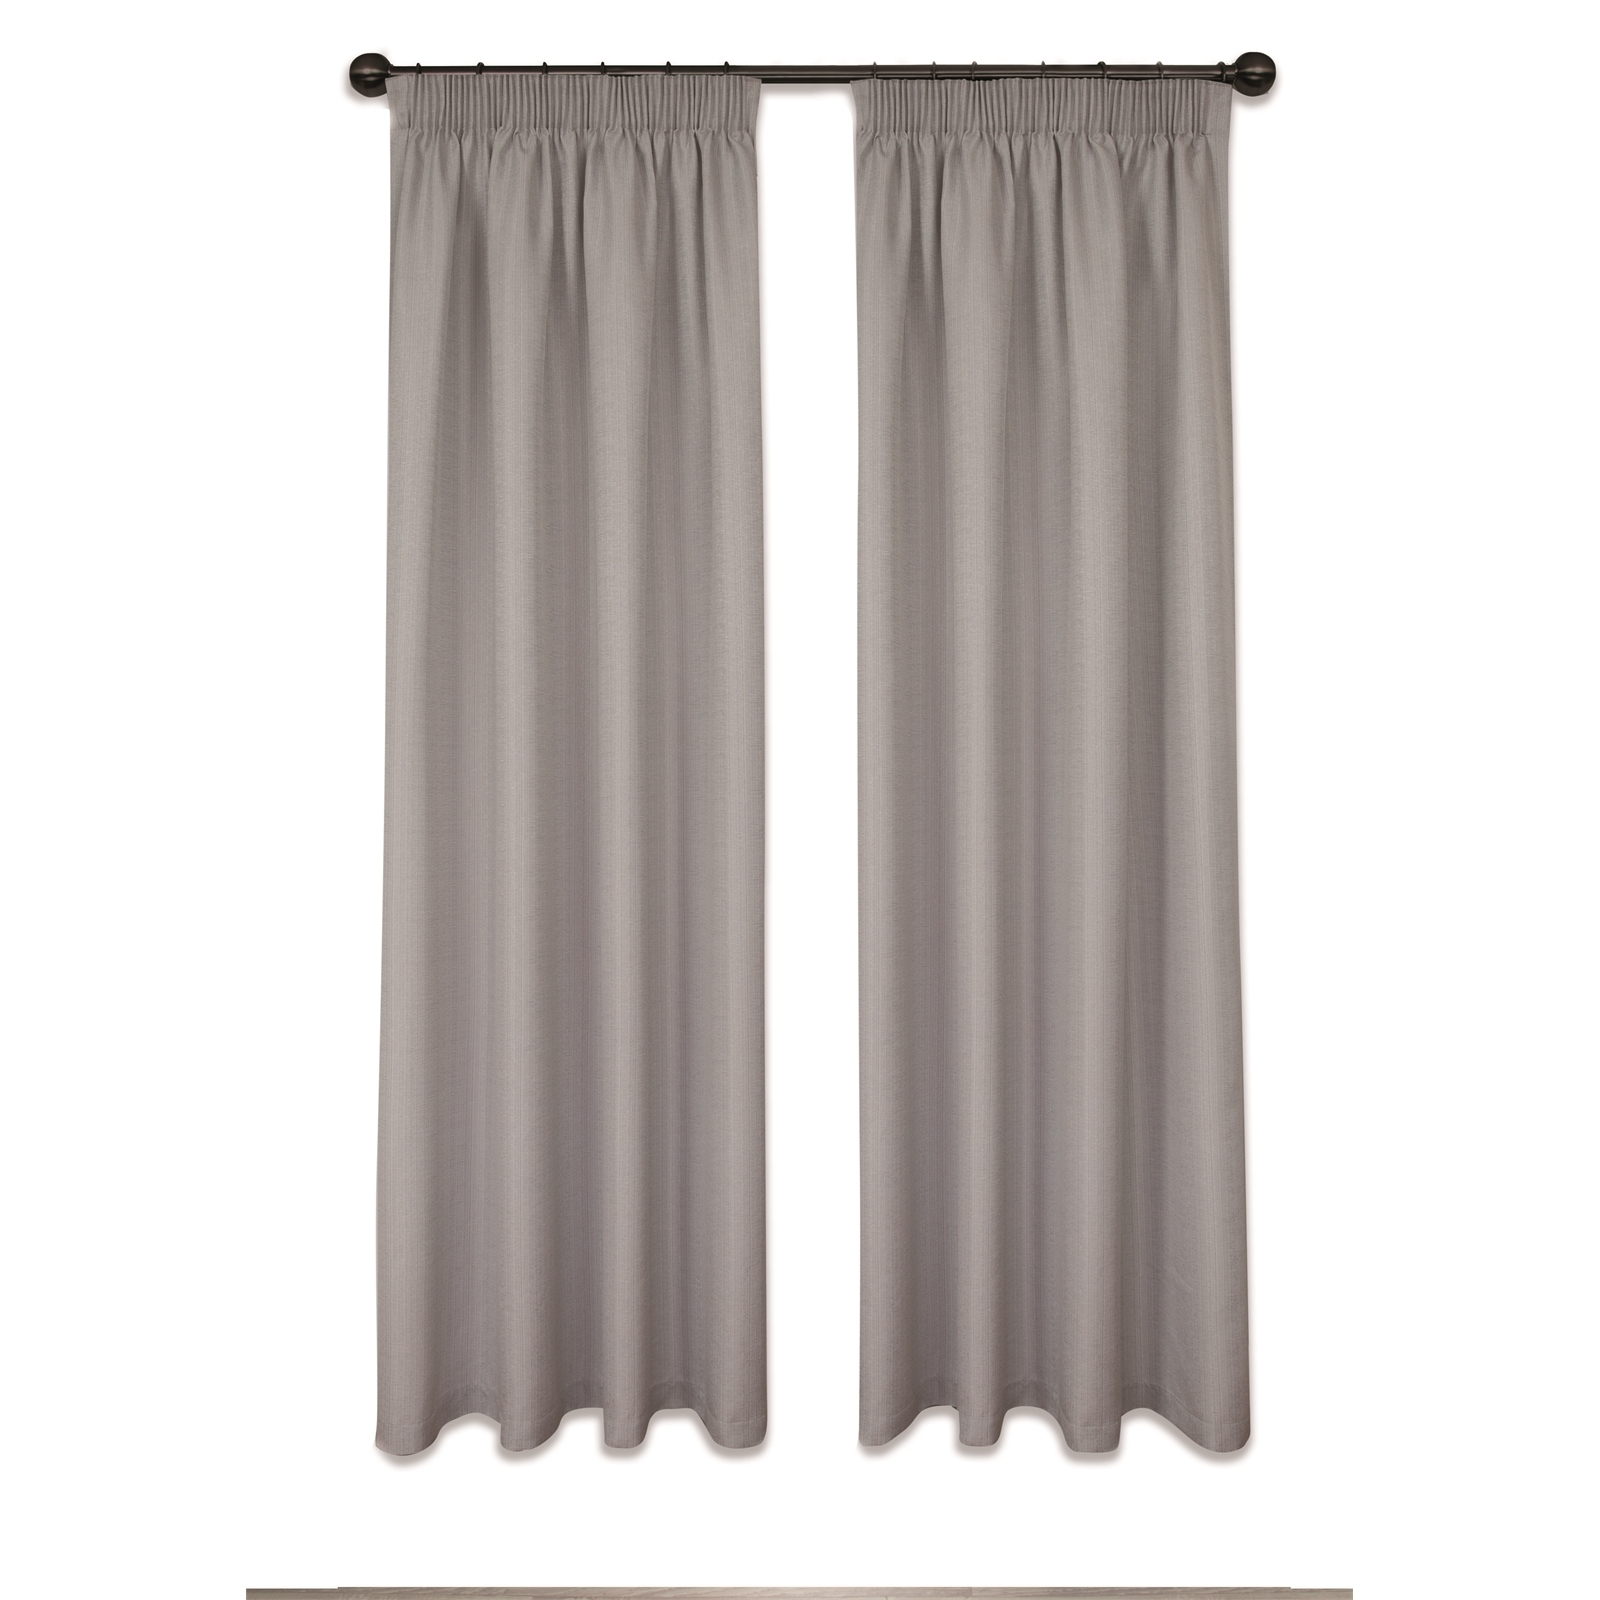 Home Style 1.5 - 2.3 x 2.05m Phoenix Thermal Curtain